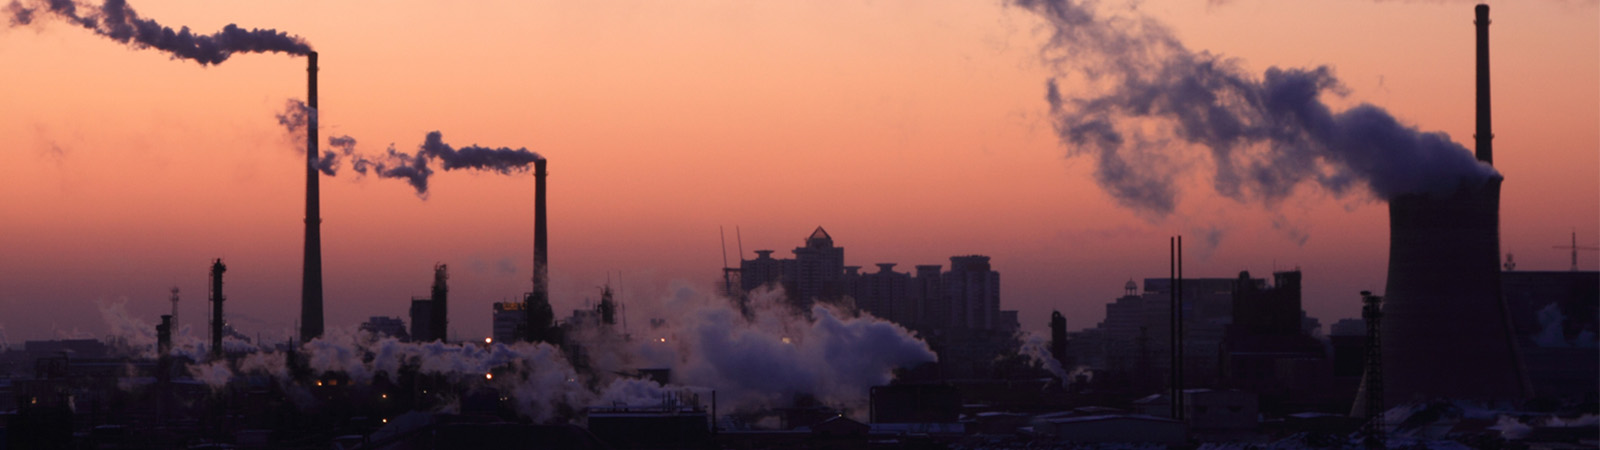 Chinese factory producing smog